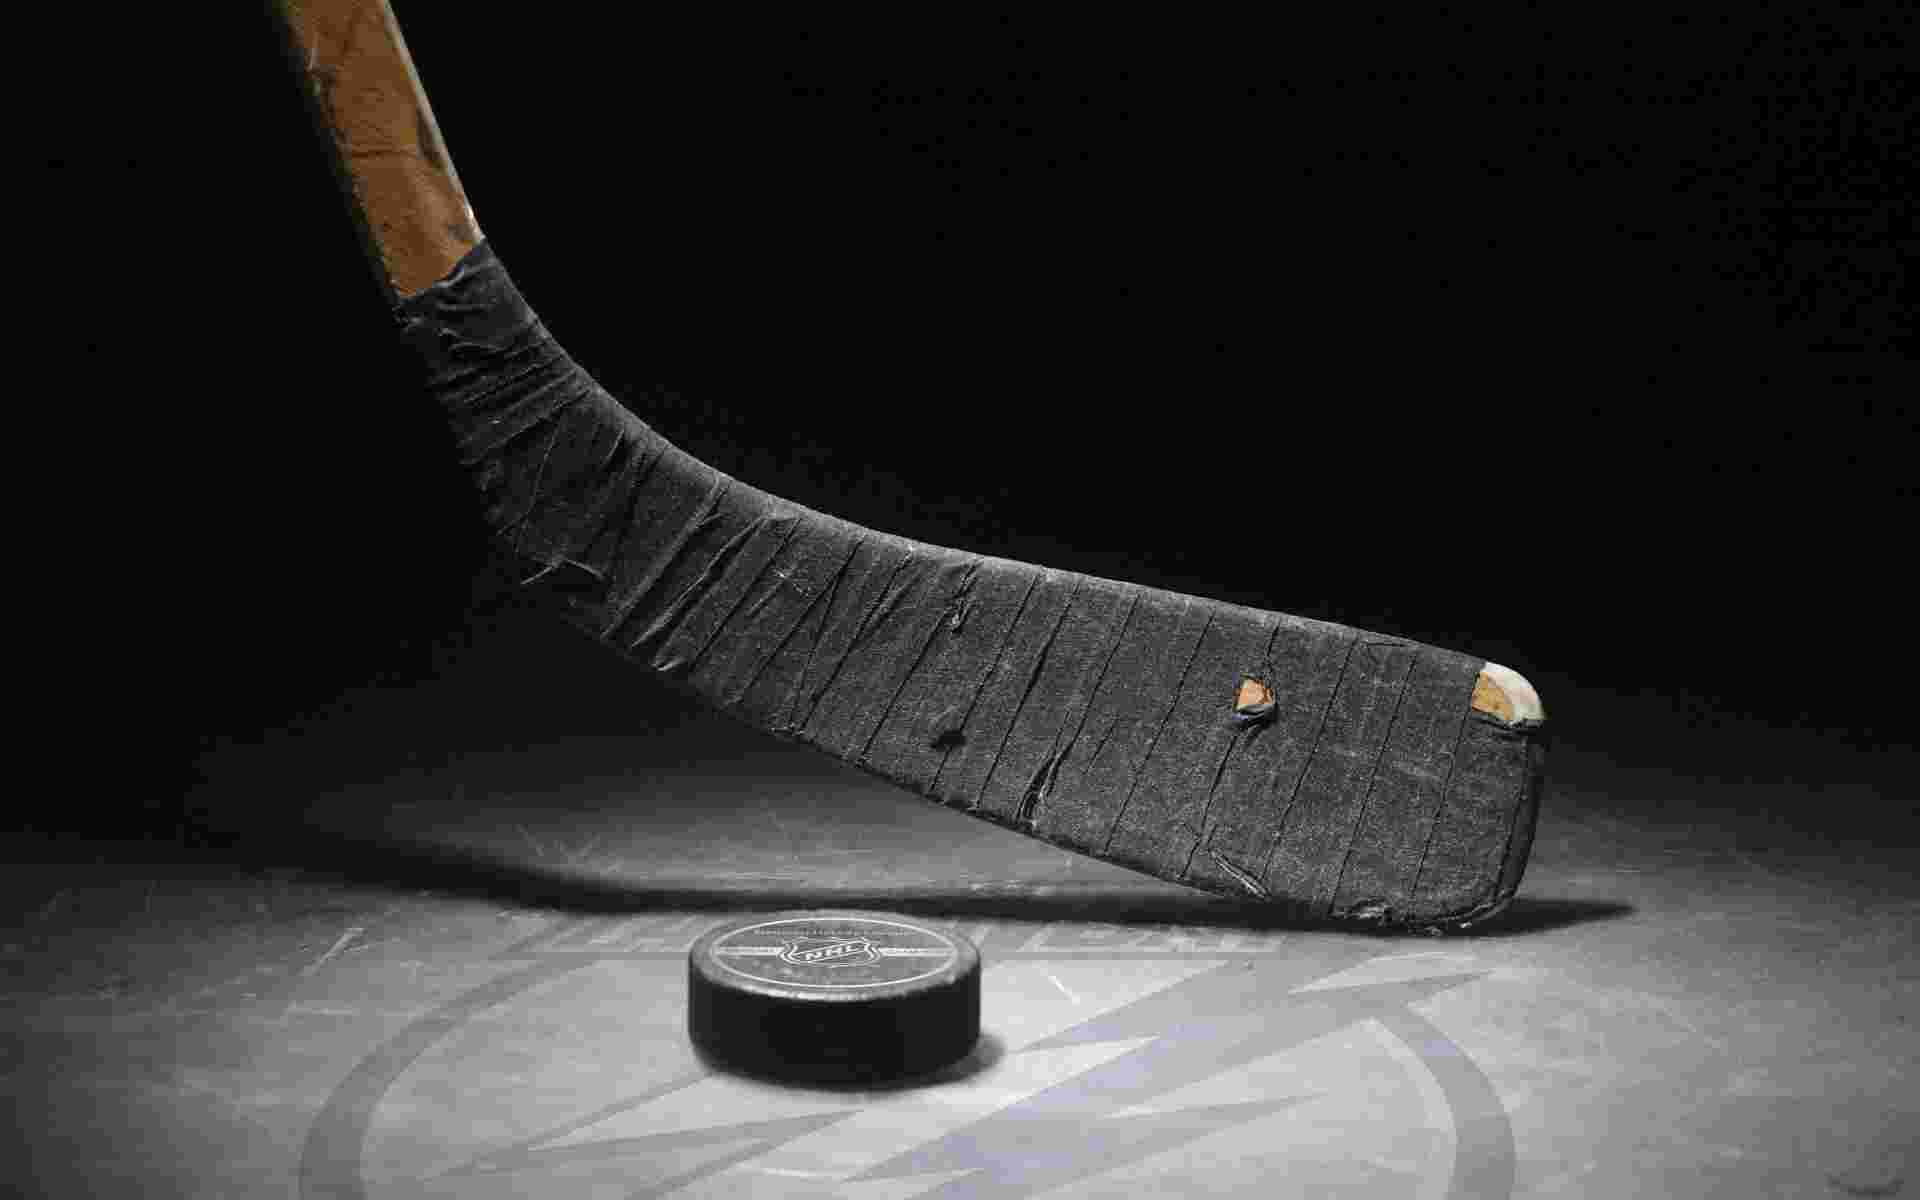 Hockey Stick And Puck On Ice Wallpaper Hockey Sport Hockey Stick Hockey Workouts Ice Hockey